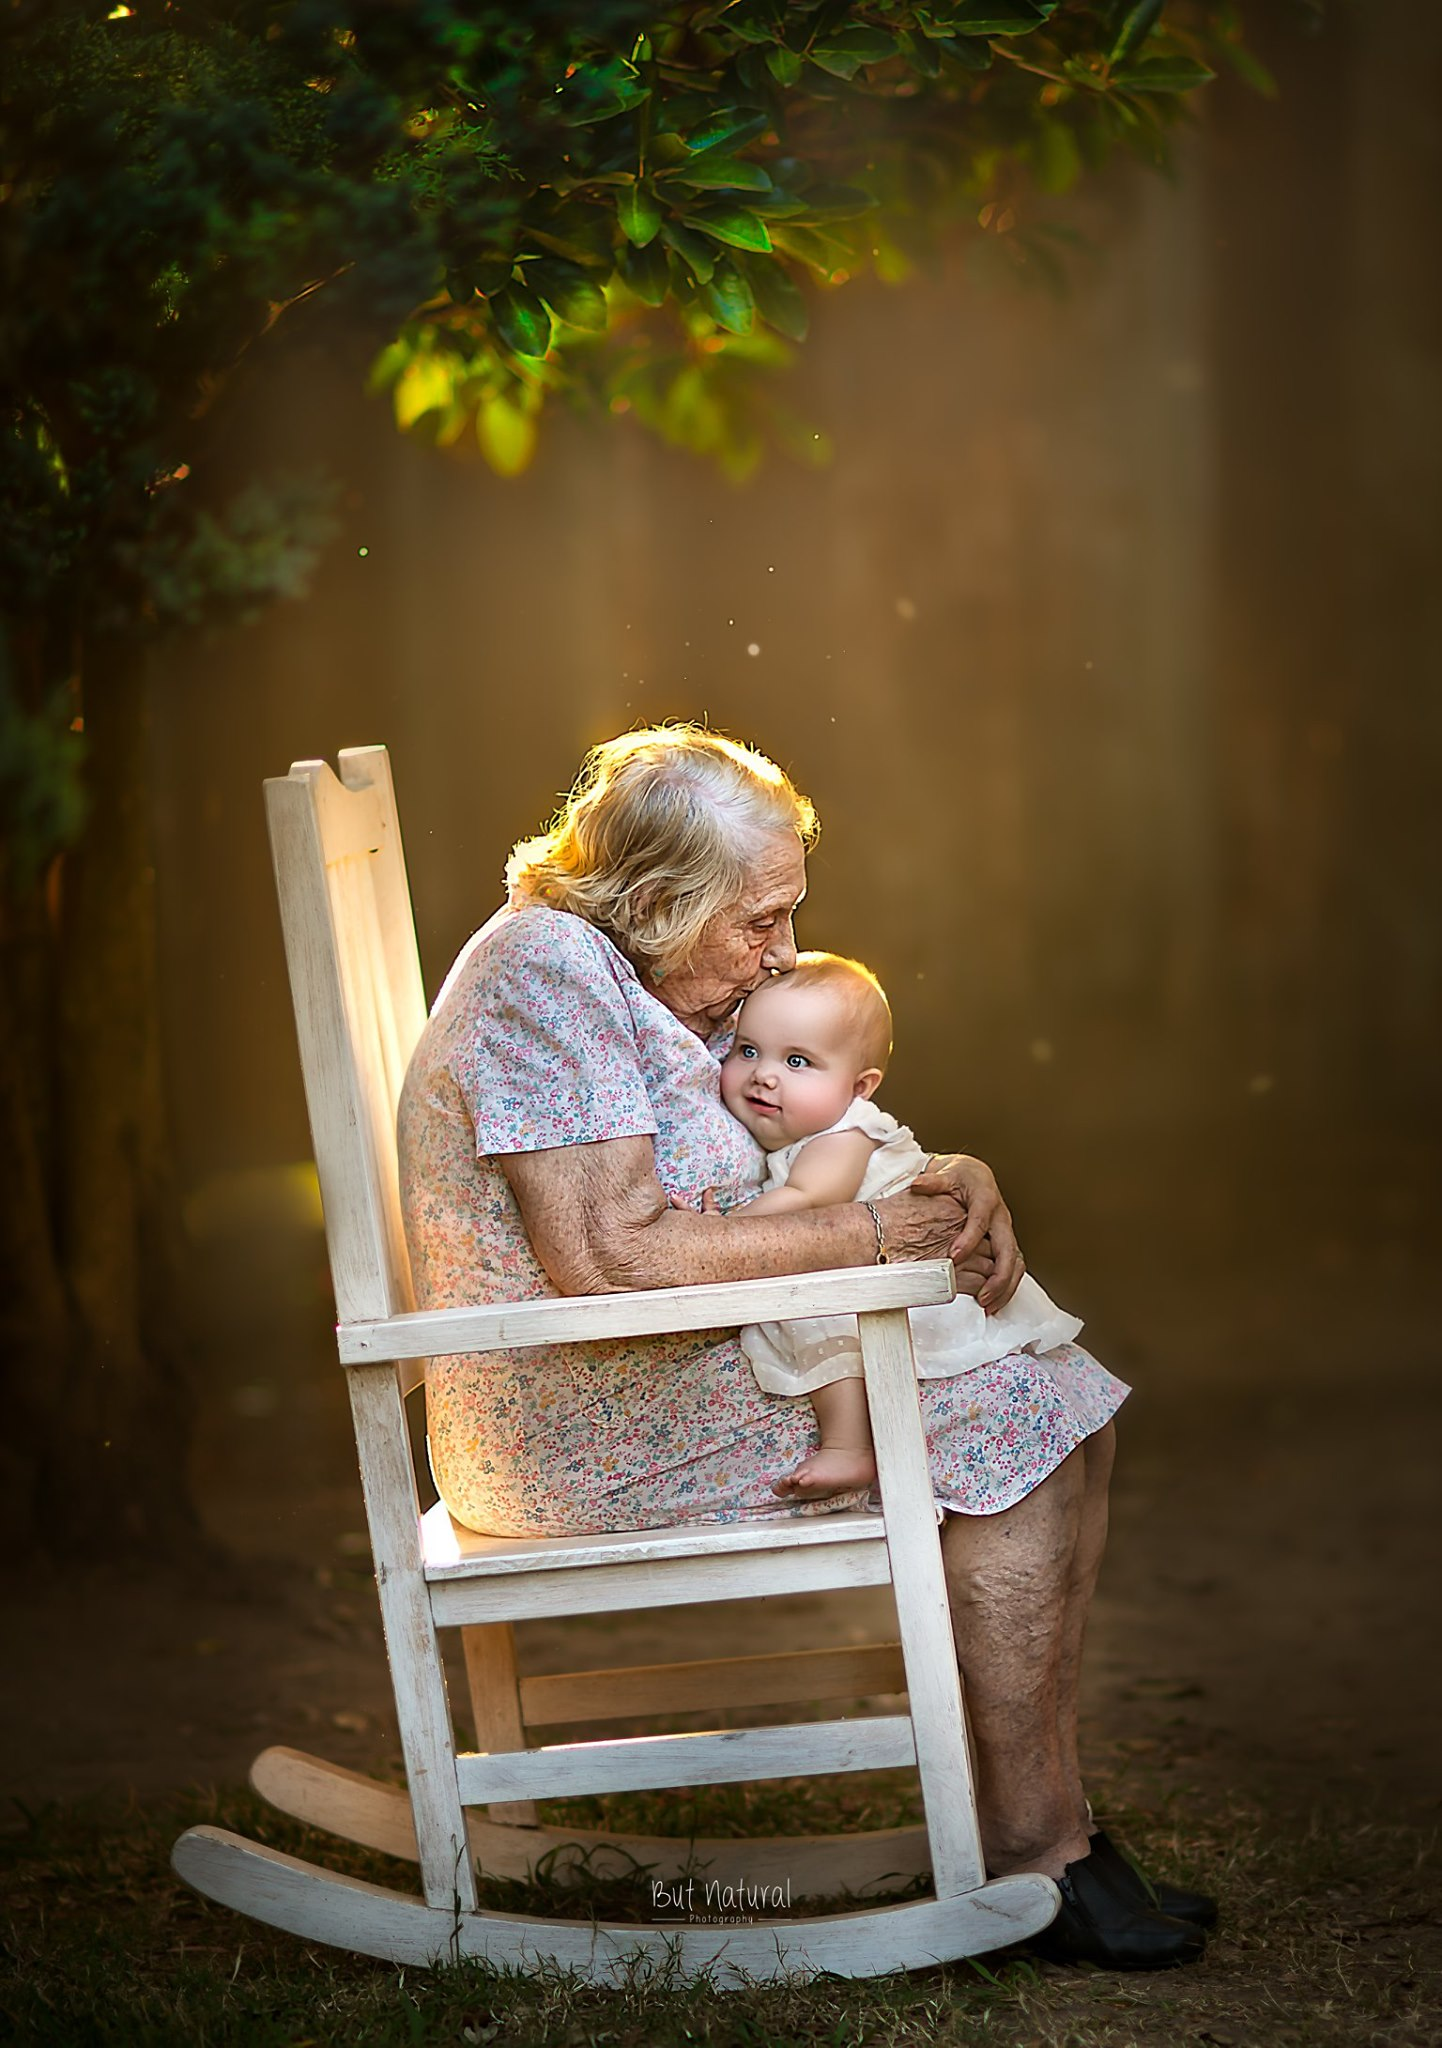 Grandmother kissing a cute little child on the forehead - But Natural Photography